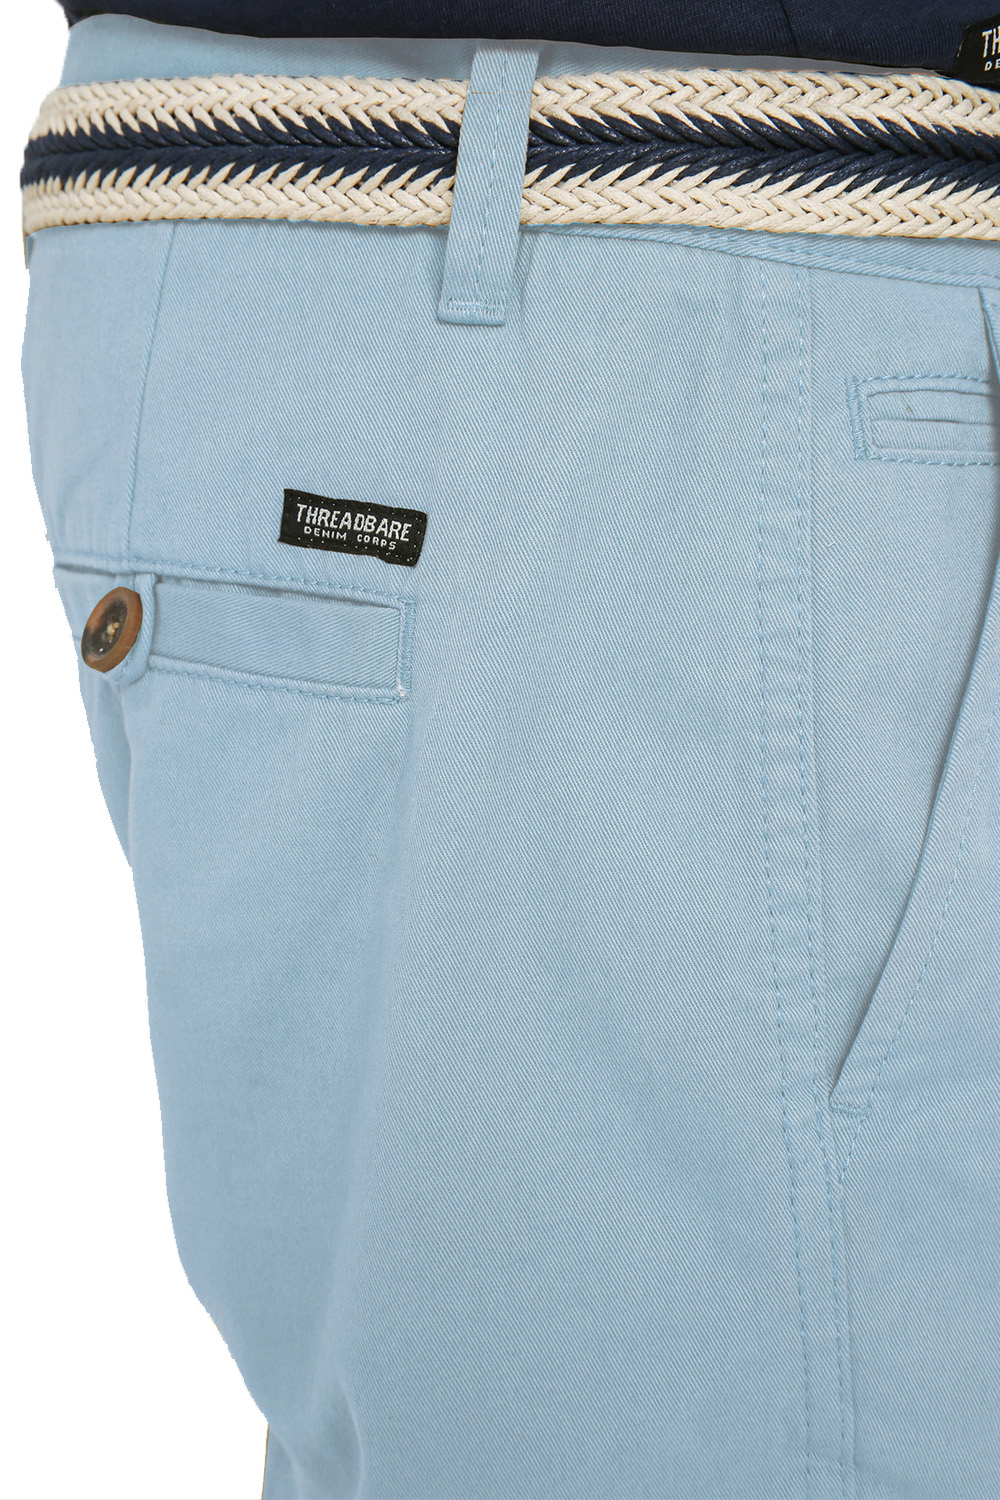 Threadbare-Mens-Slim-Fit-Belted-Chino-Shorts-Summer-Casual-Cotton-Smart-Bottoms thumbnail 35